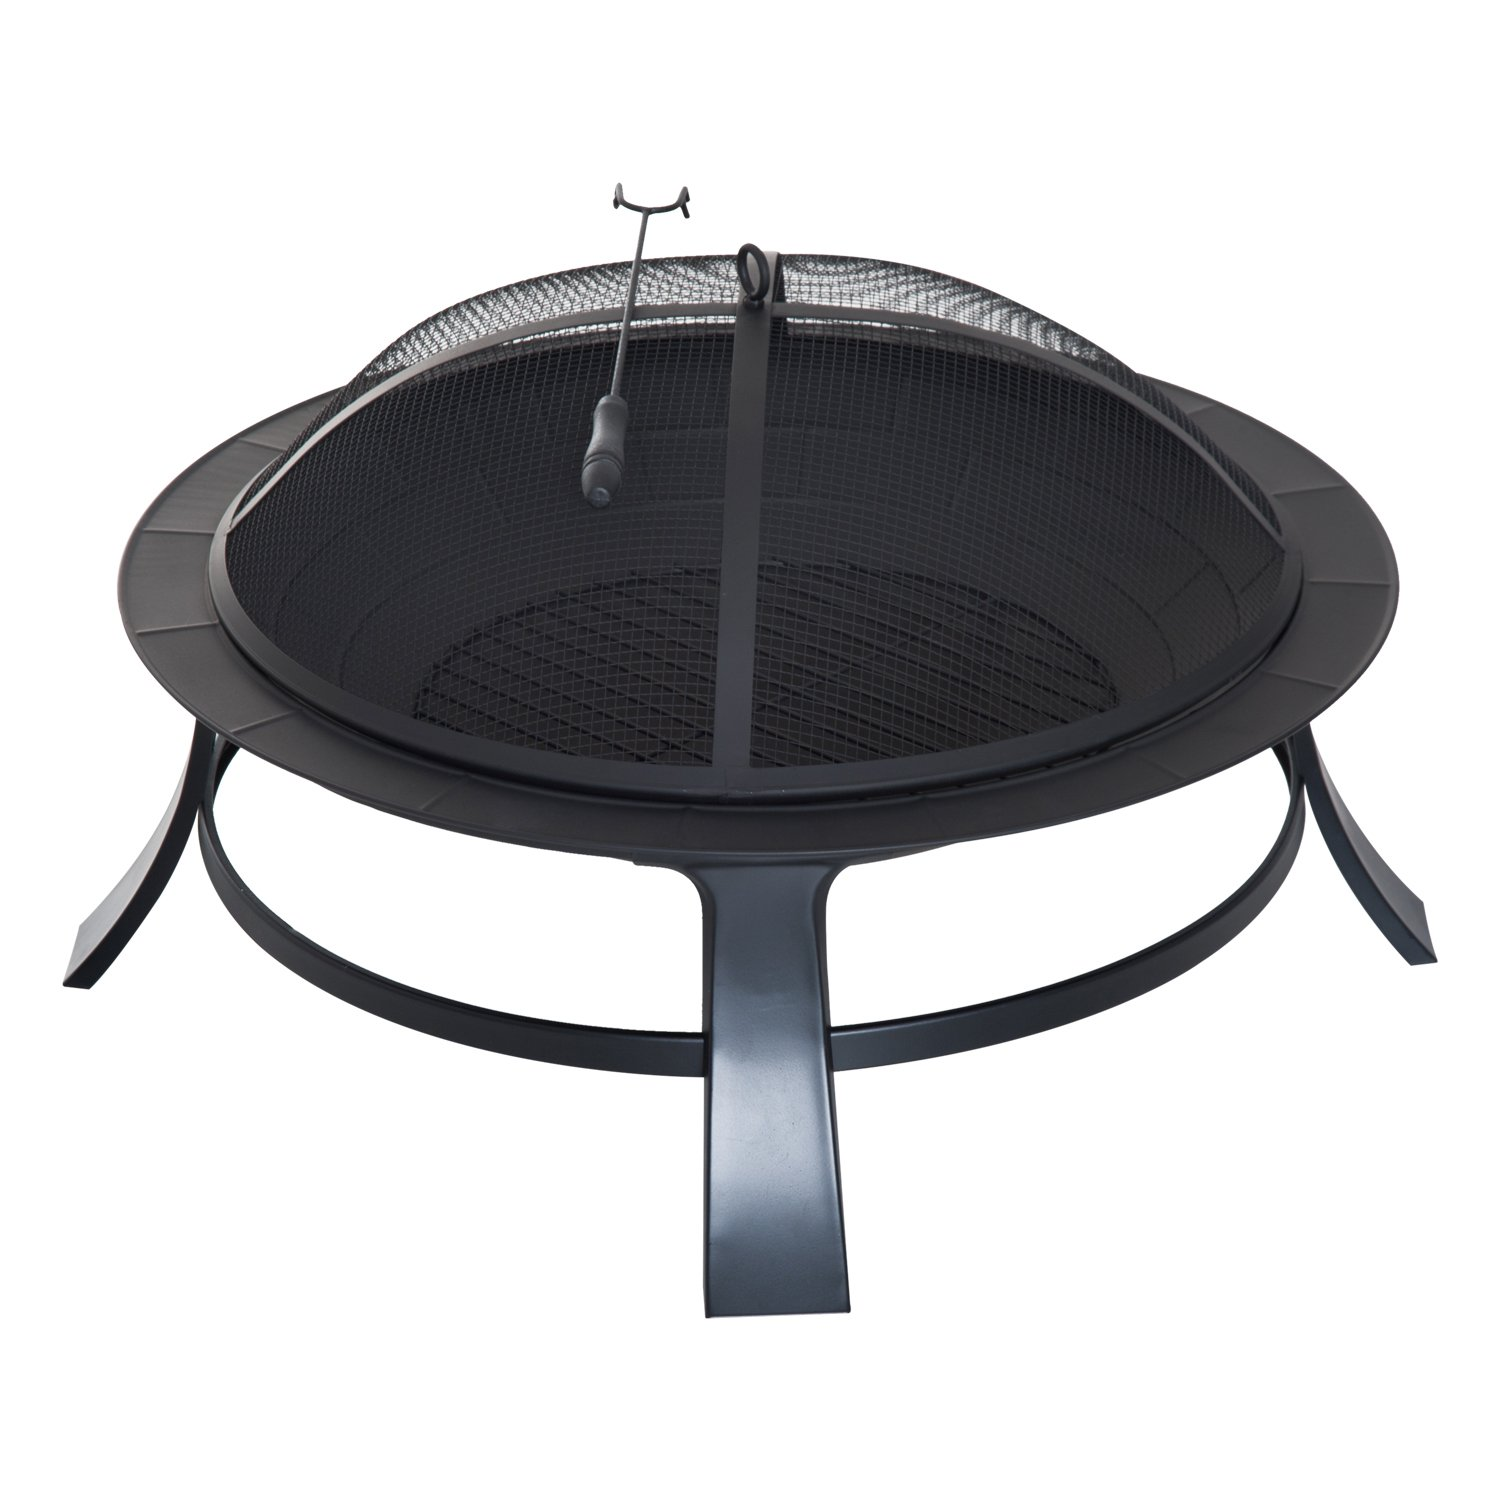 Outsunny 30 Round Firepit Garden Fireplace Portable Wood Burning Backyard Poker Spark Screen Black Aosom Canada CA842-0790231